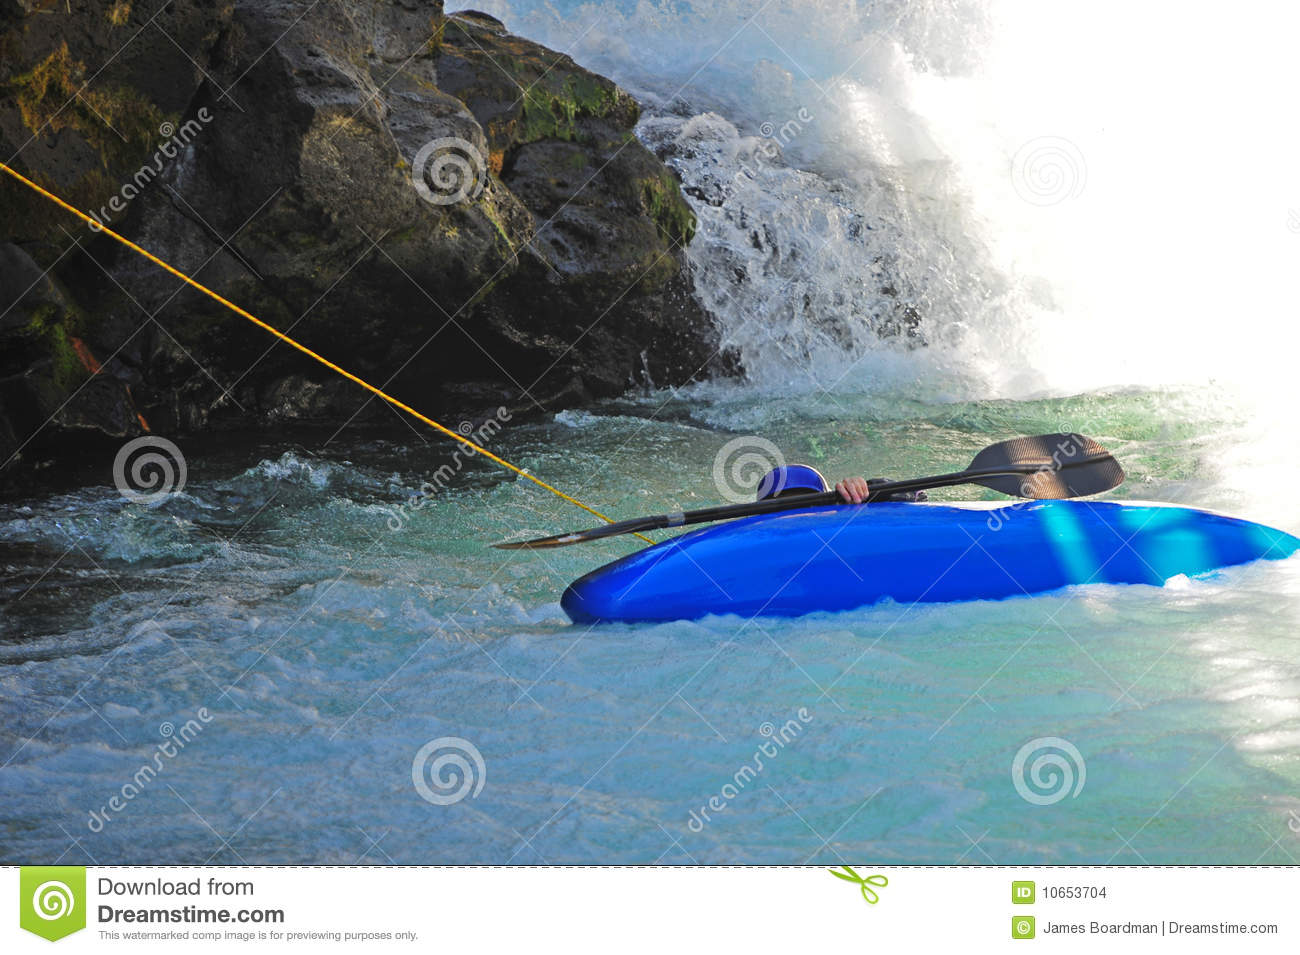 Kayaker being pulled to safety